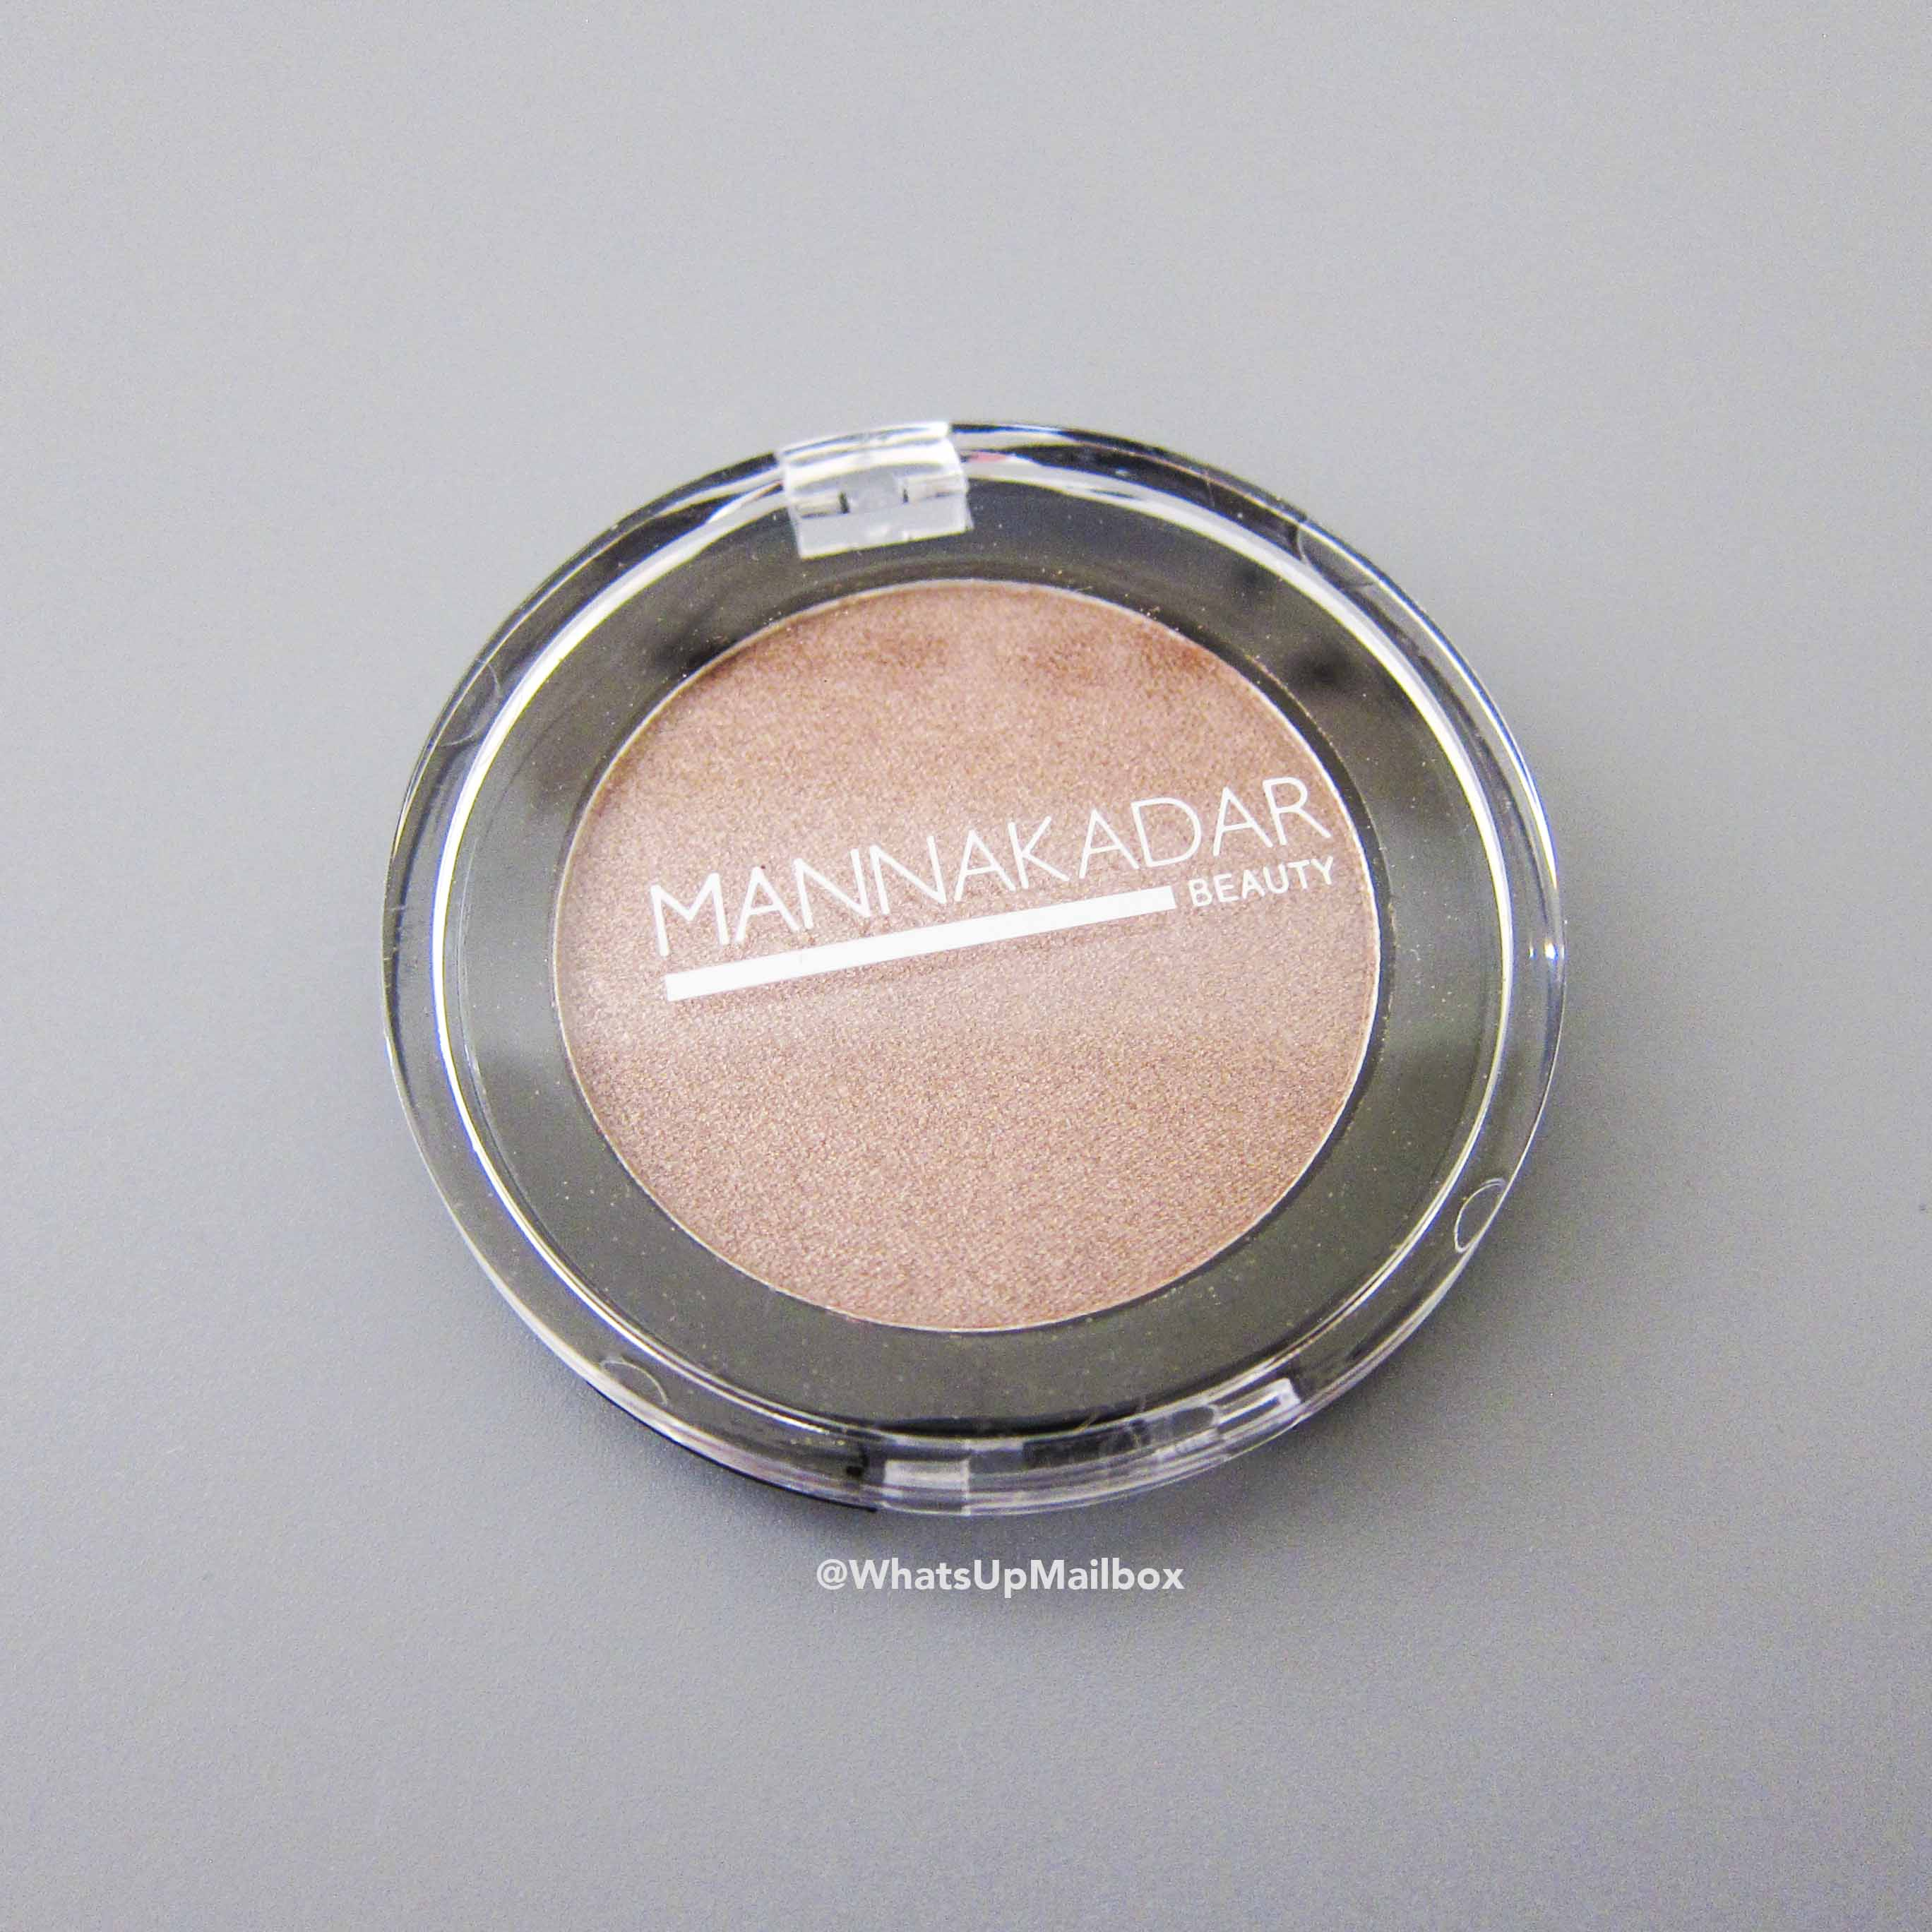 Cate & Chloe VIP - Manna Kadar Fantasy 3-in-1 Blush Highlighter Eyeshadow